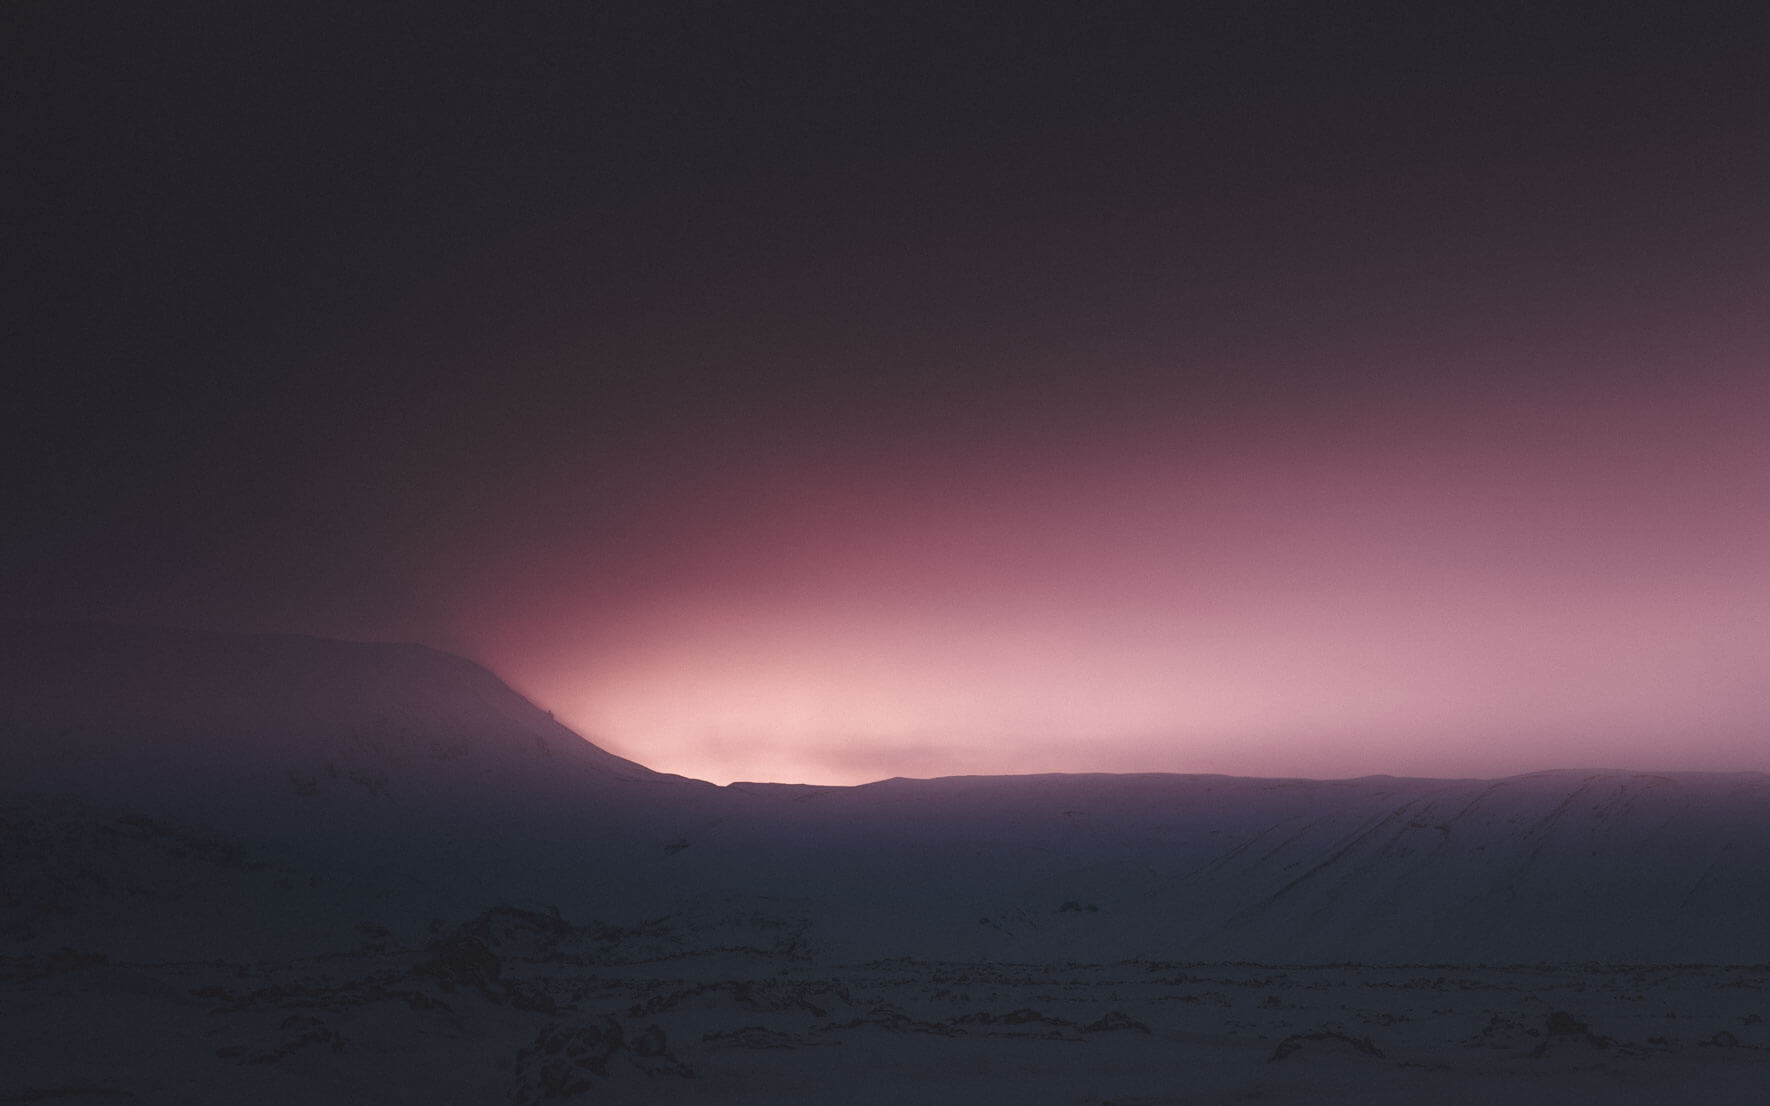 Sunset over the mountains in Iceland in winter